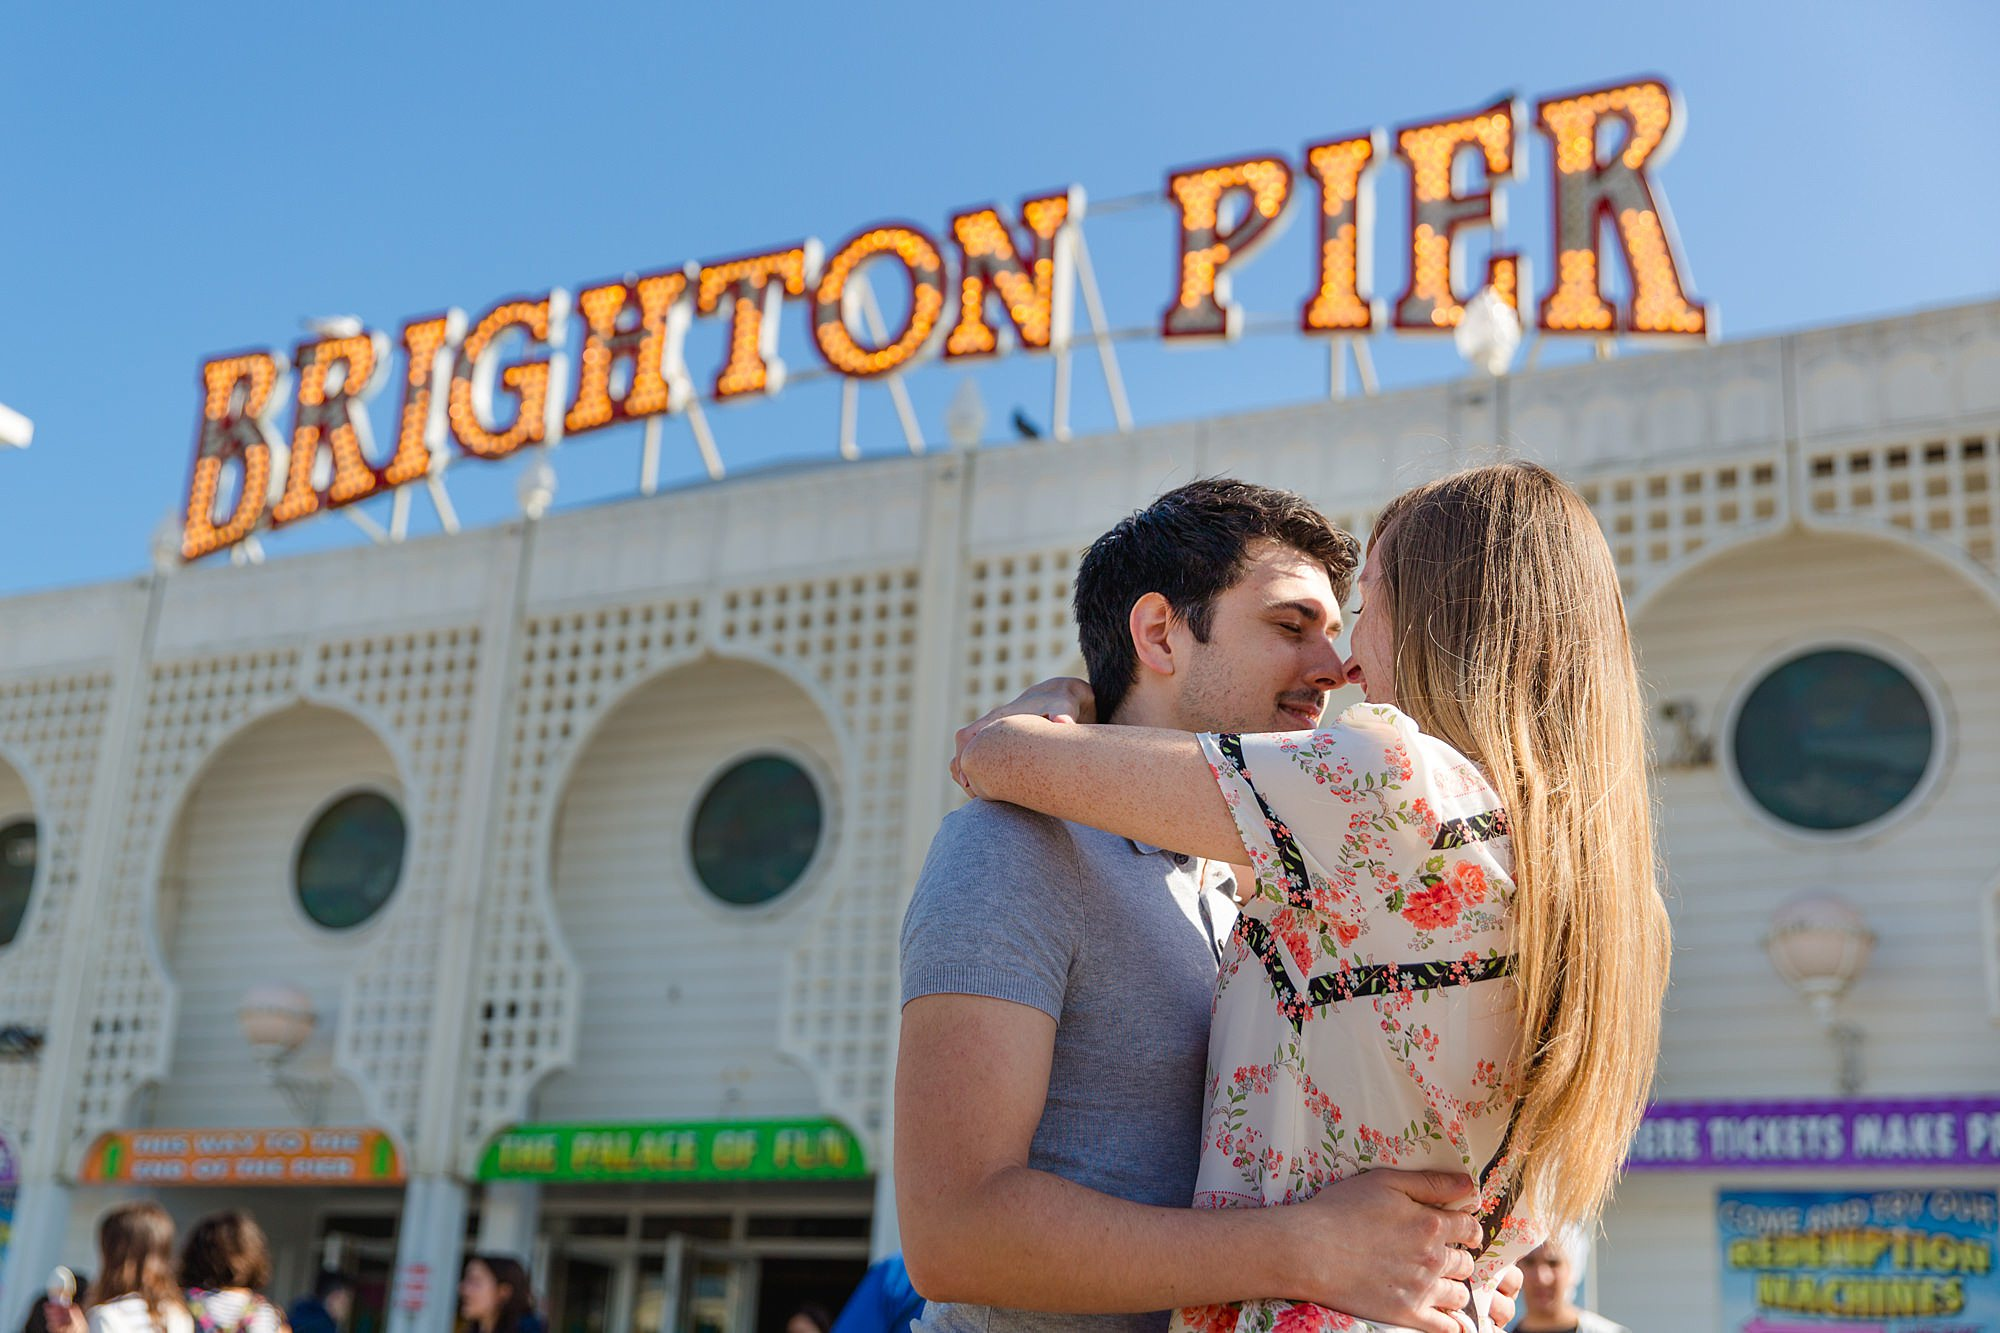 Fun Brighton engagement shoot couple in front of brighton pier sign